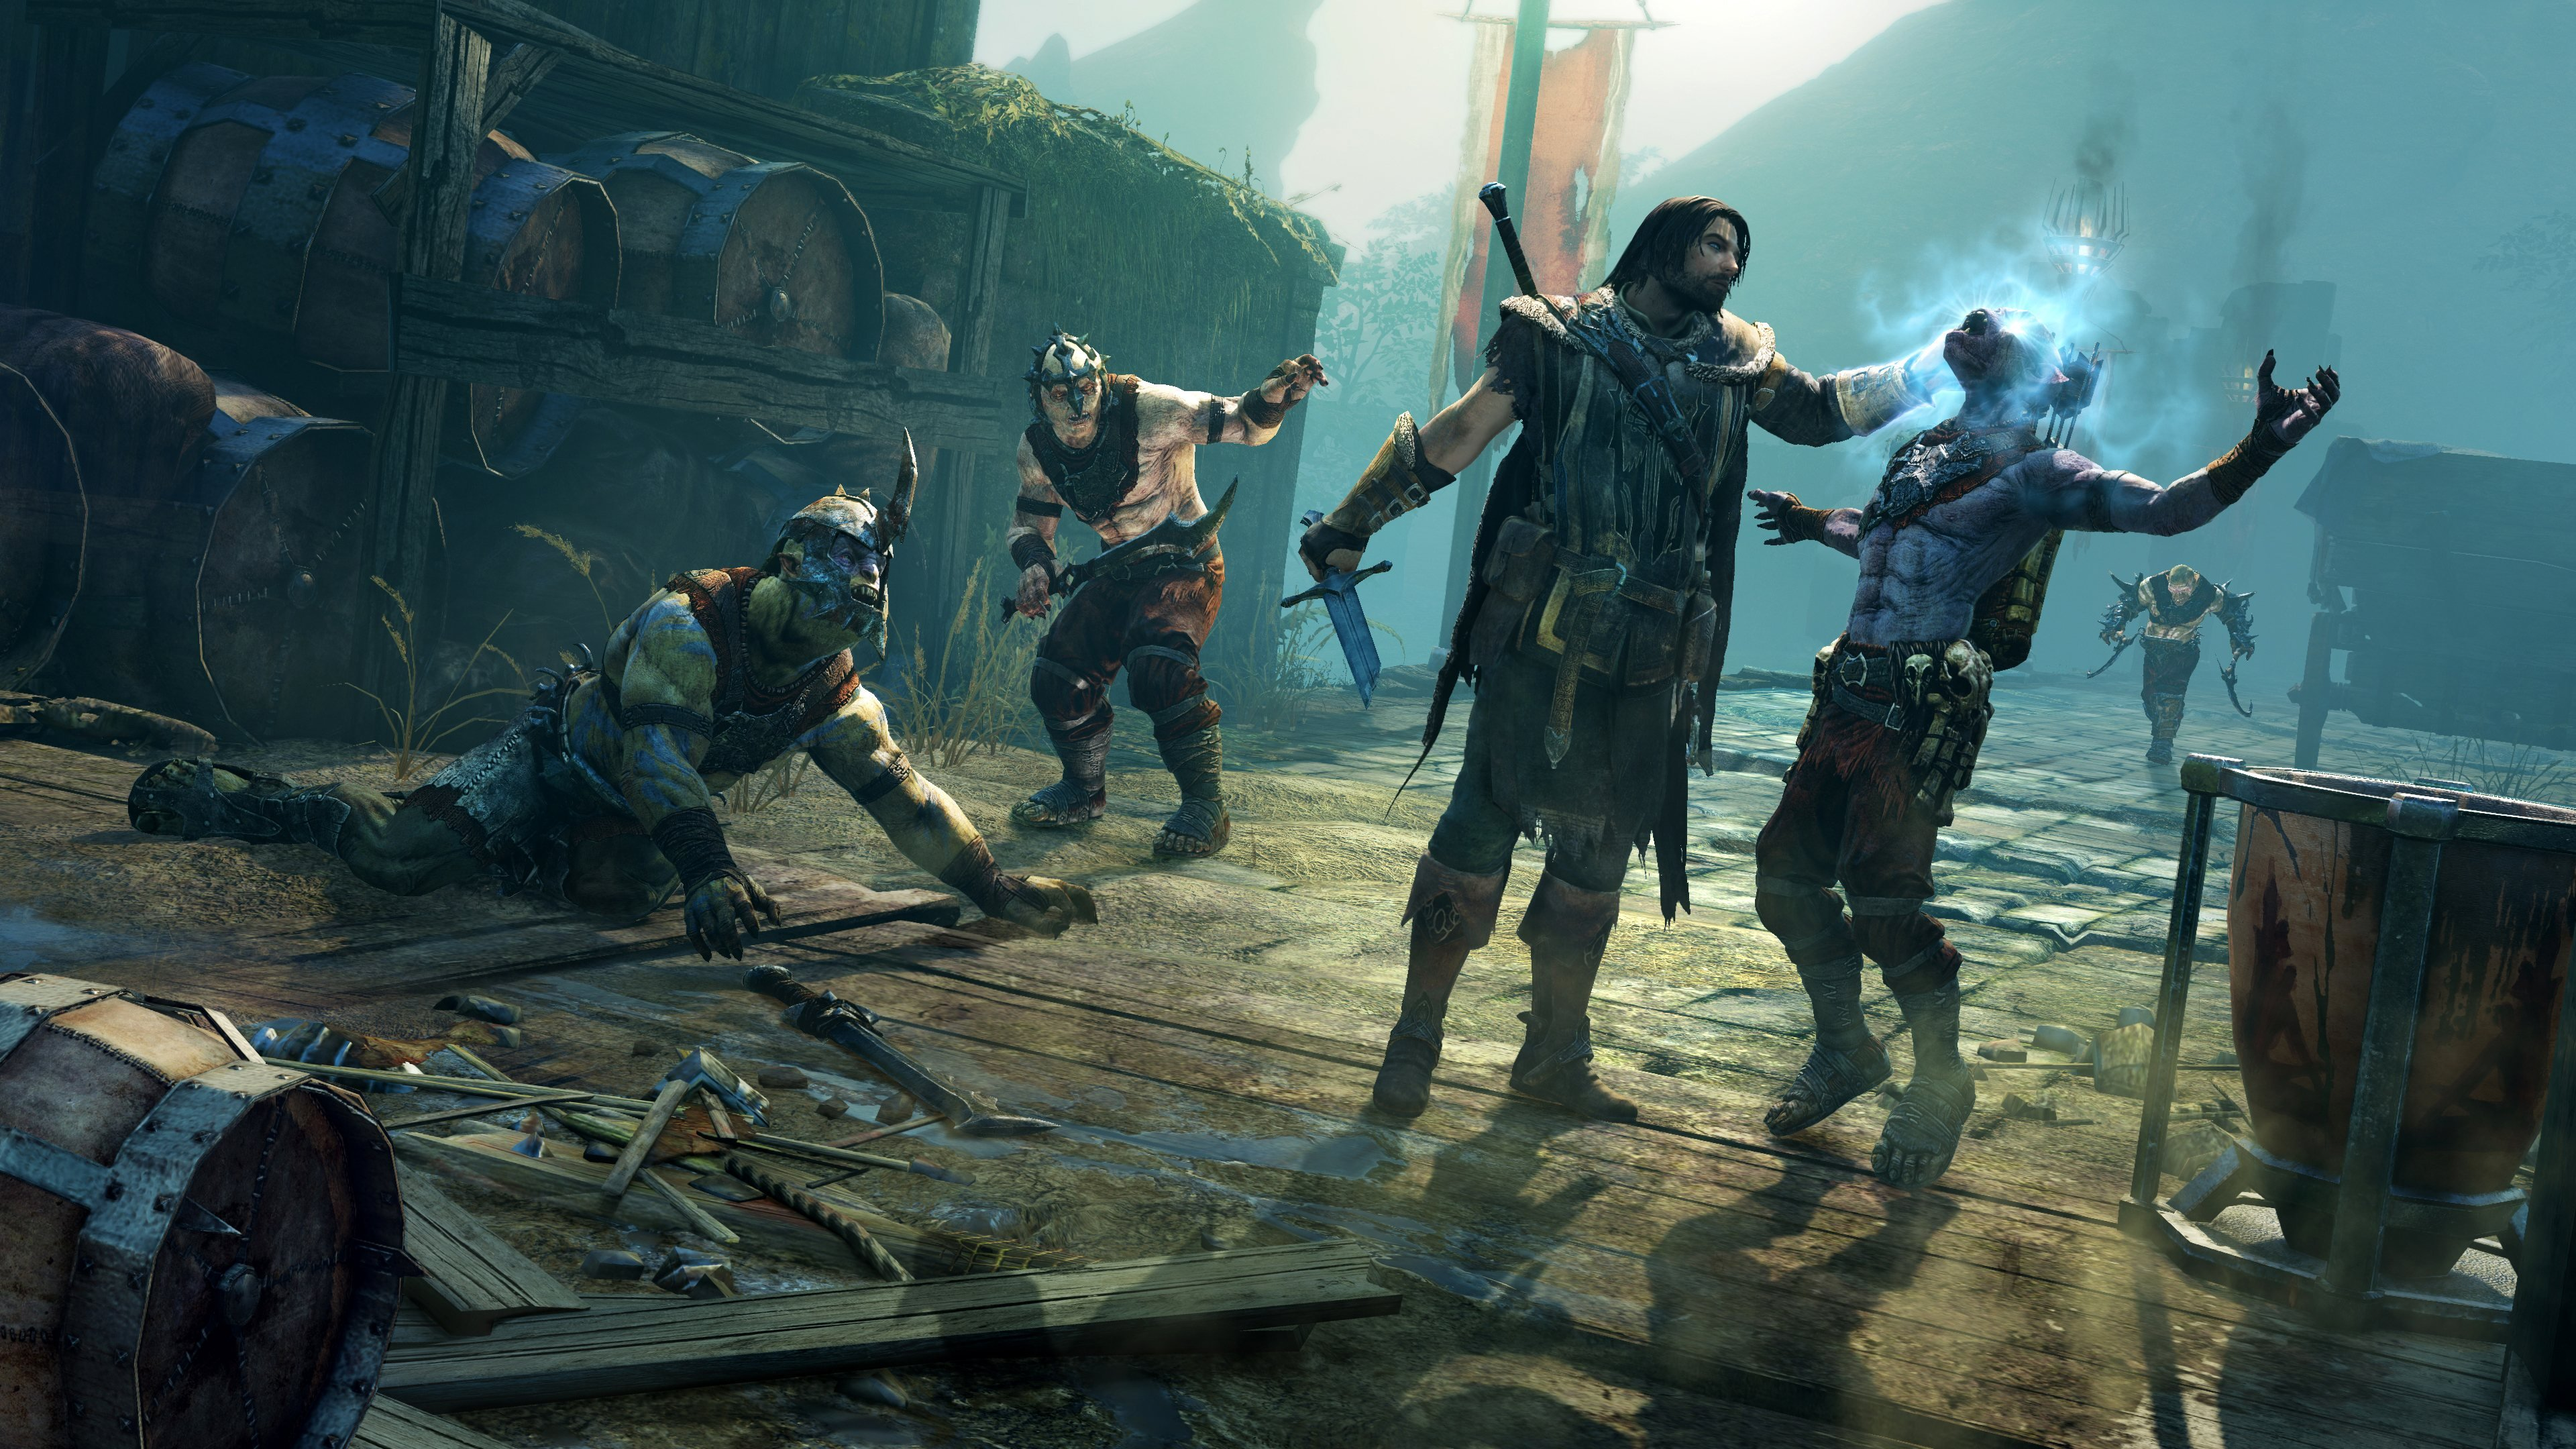 Download Shadow Of Mordor Background 40673 3840x2160 Px High